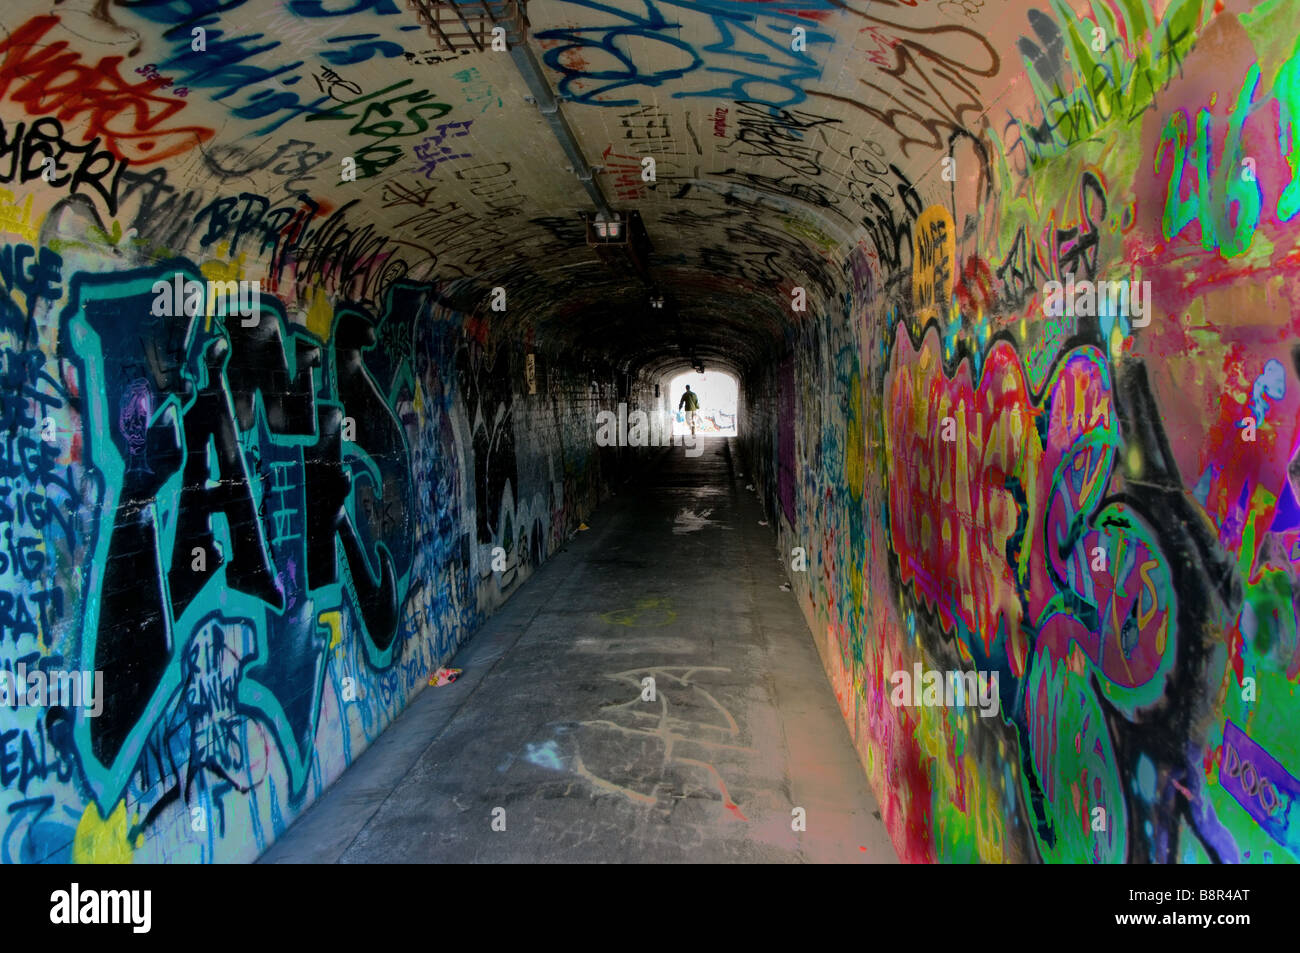 A man exits a graffitied tunnel. - Stock Image